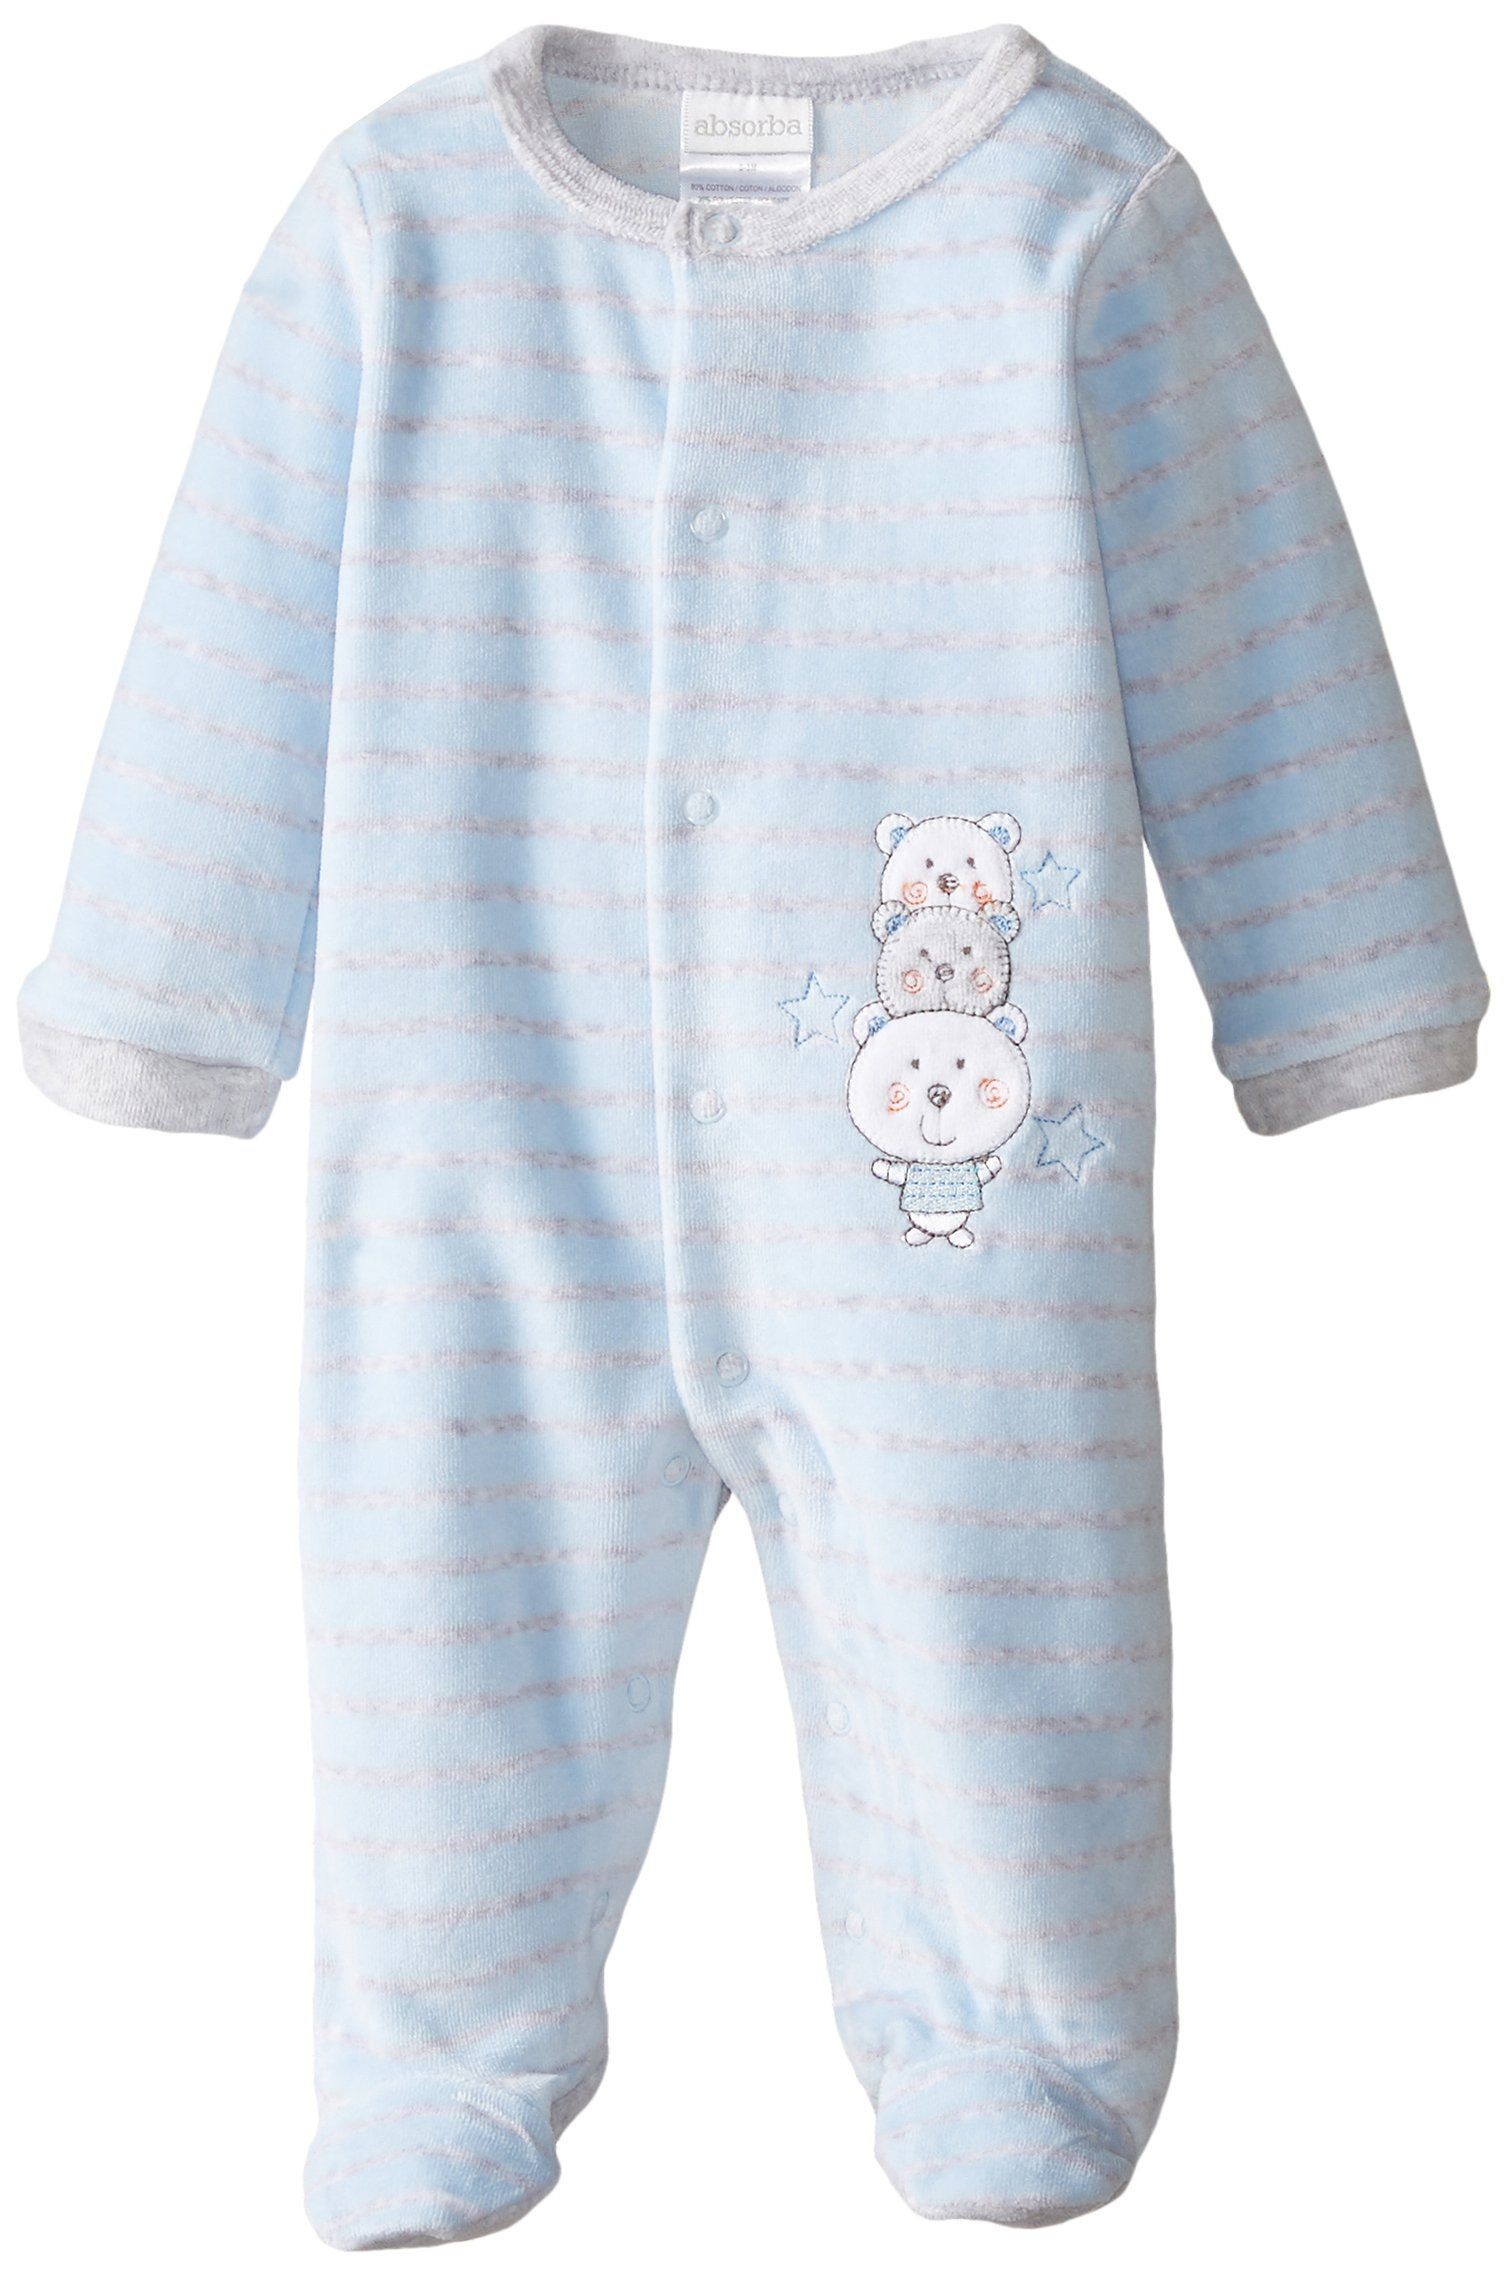 BNWT Baby *Infant Boys 2 Pieces Set Outfit 100/% COTTON *Newborn